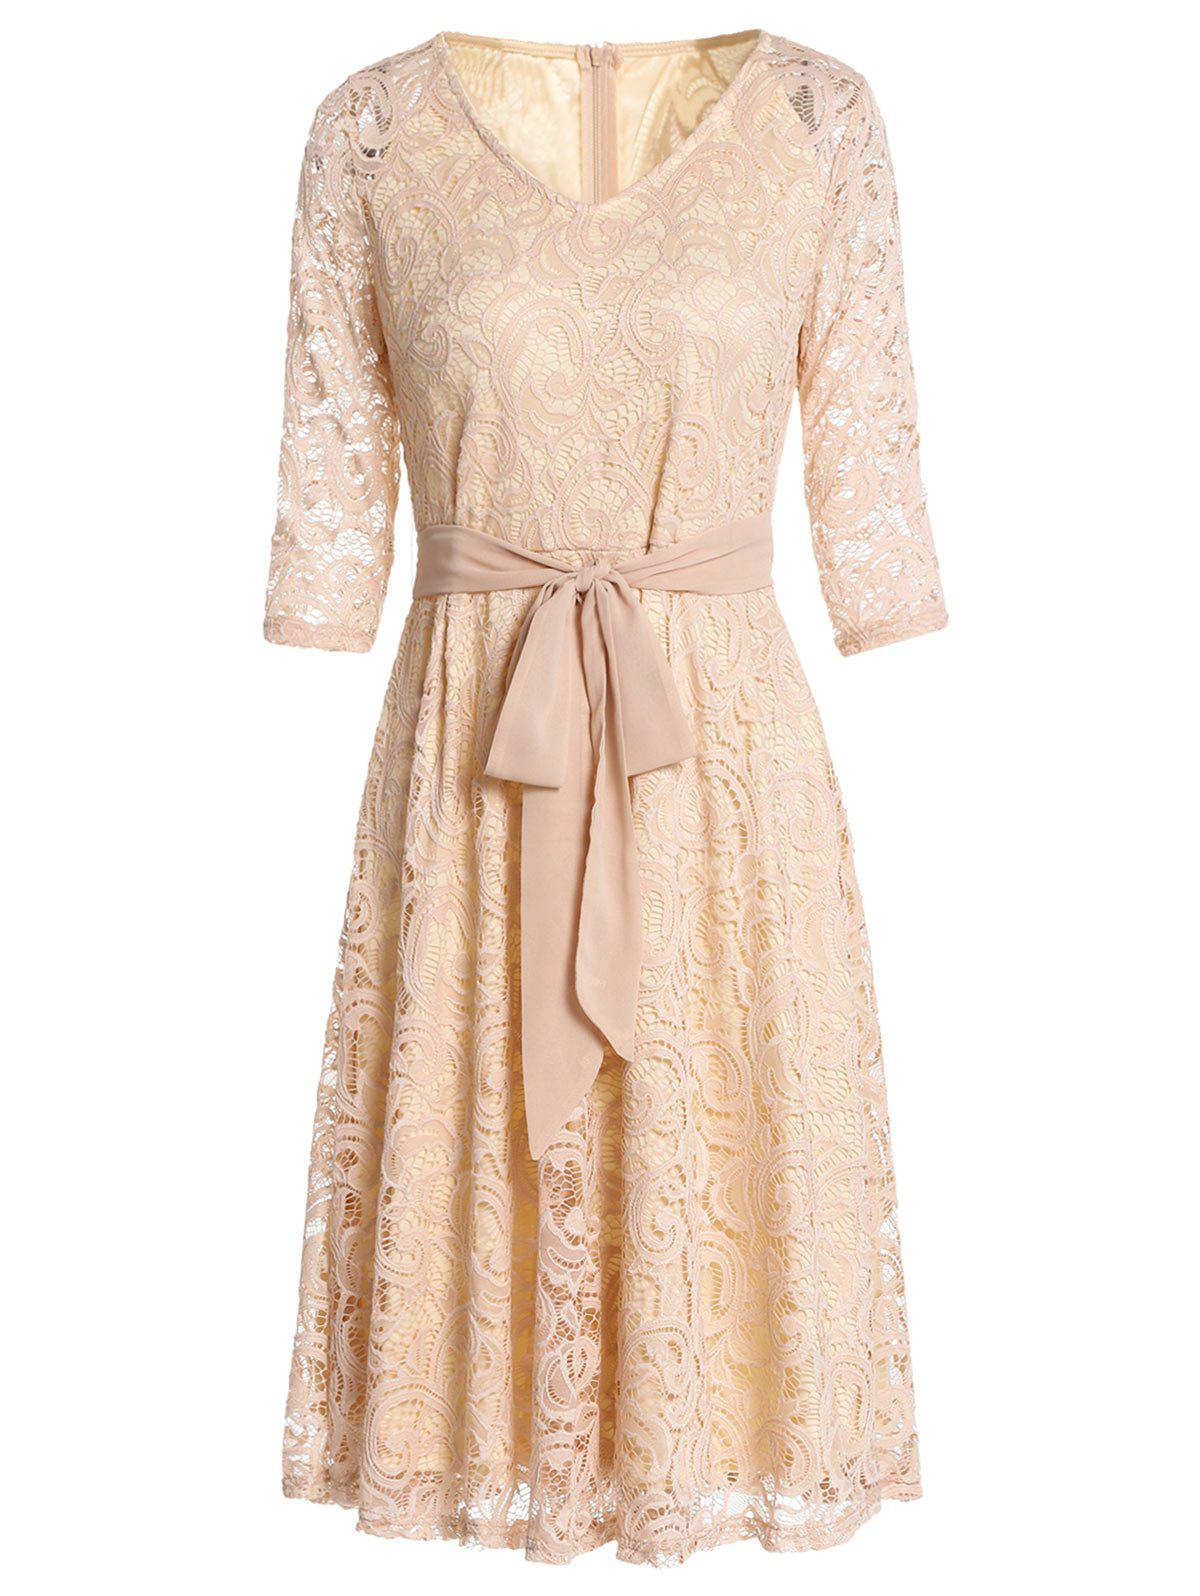 Buy Vintage Lace High Waist Dress